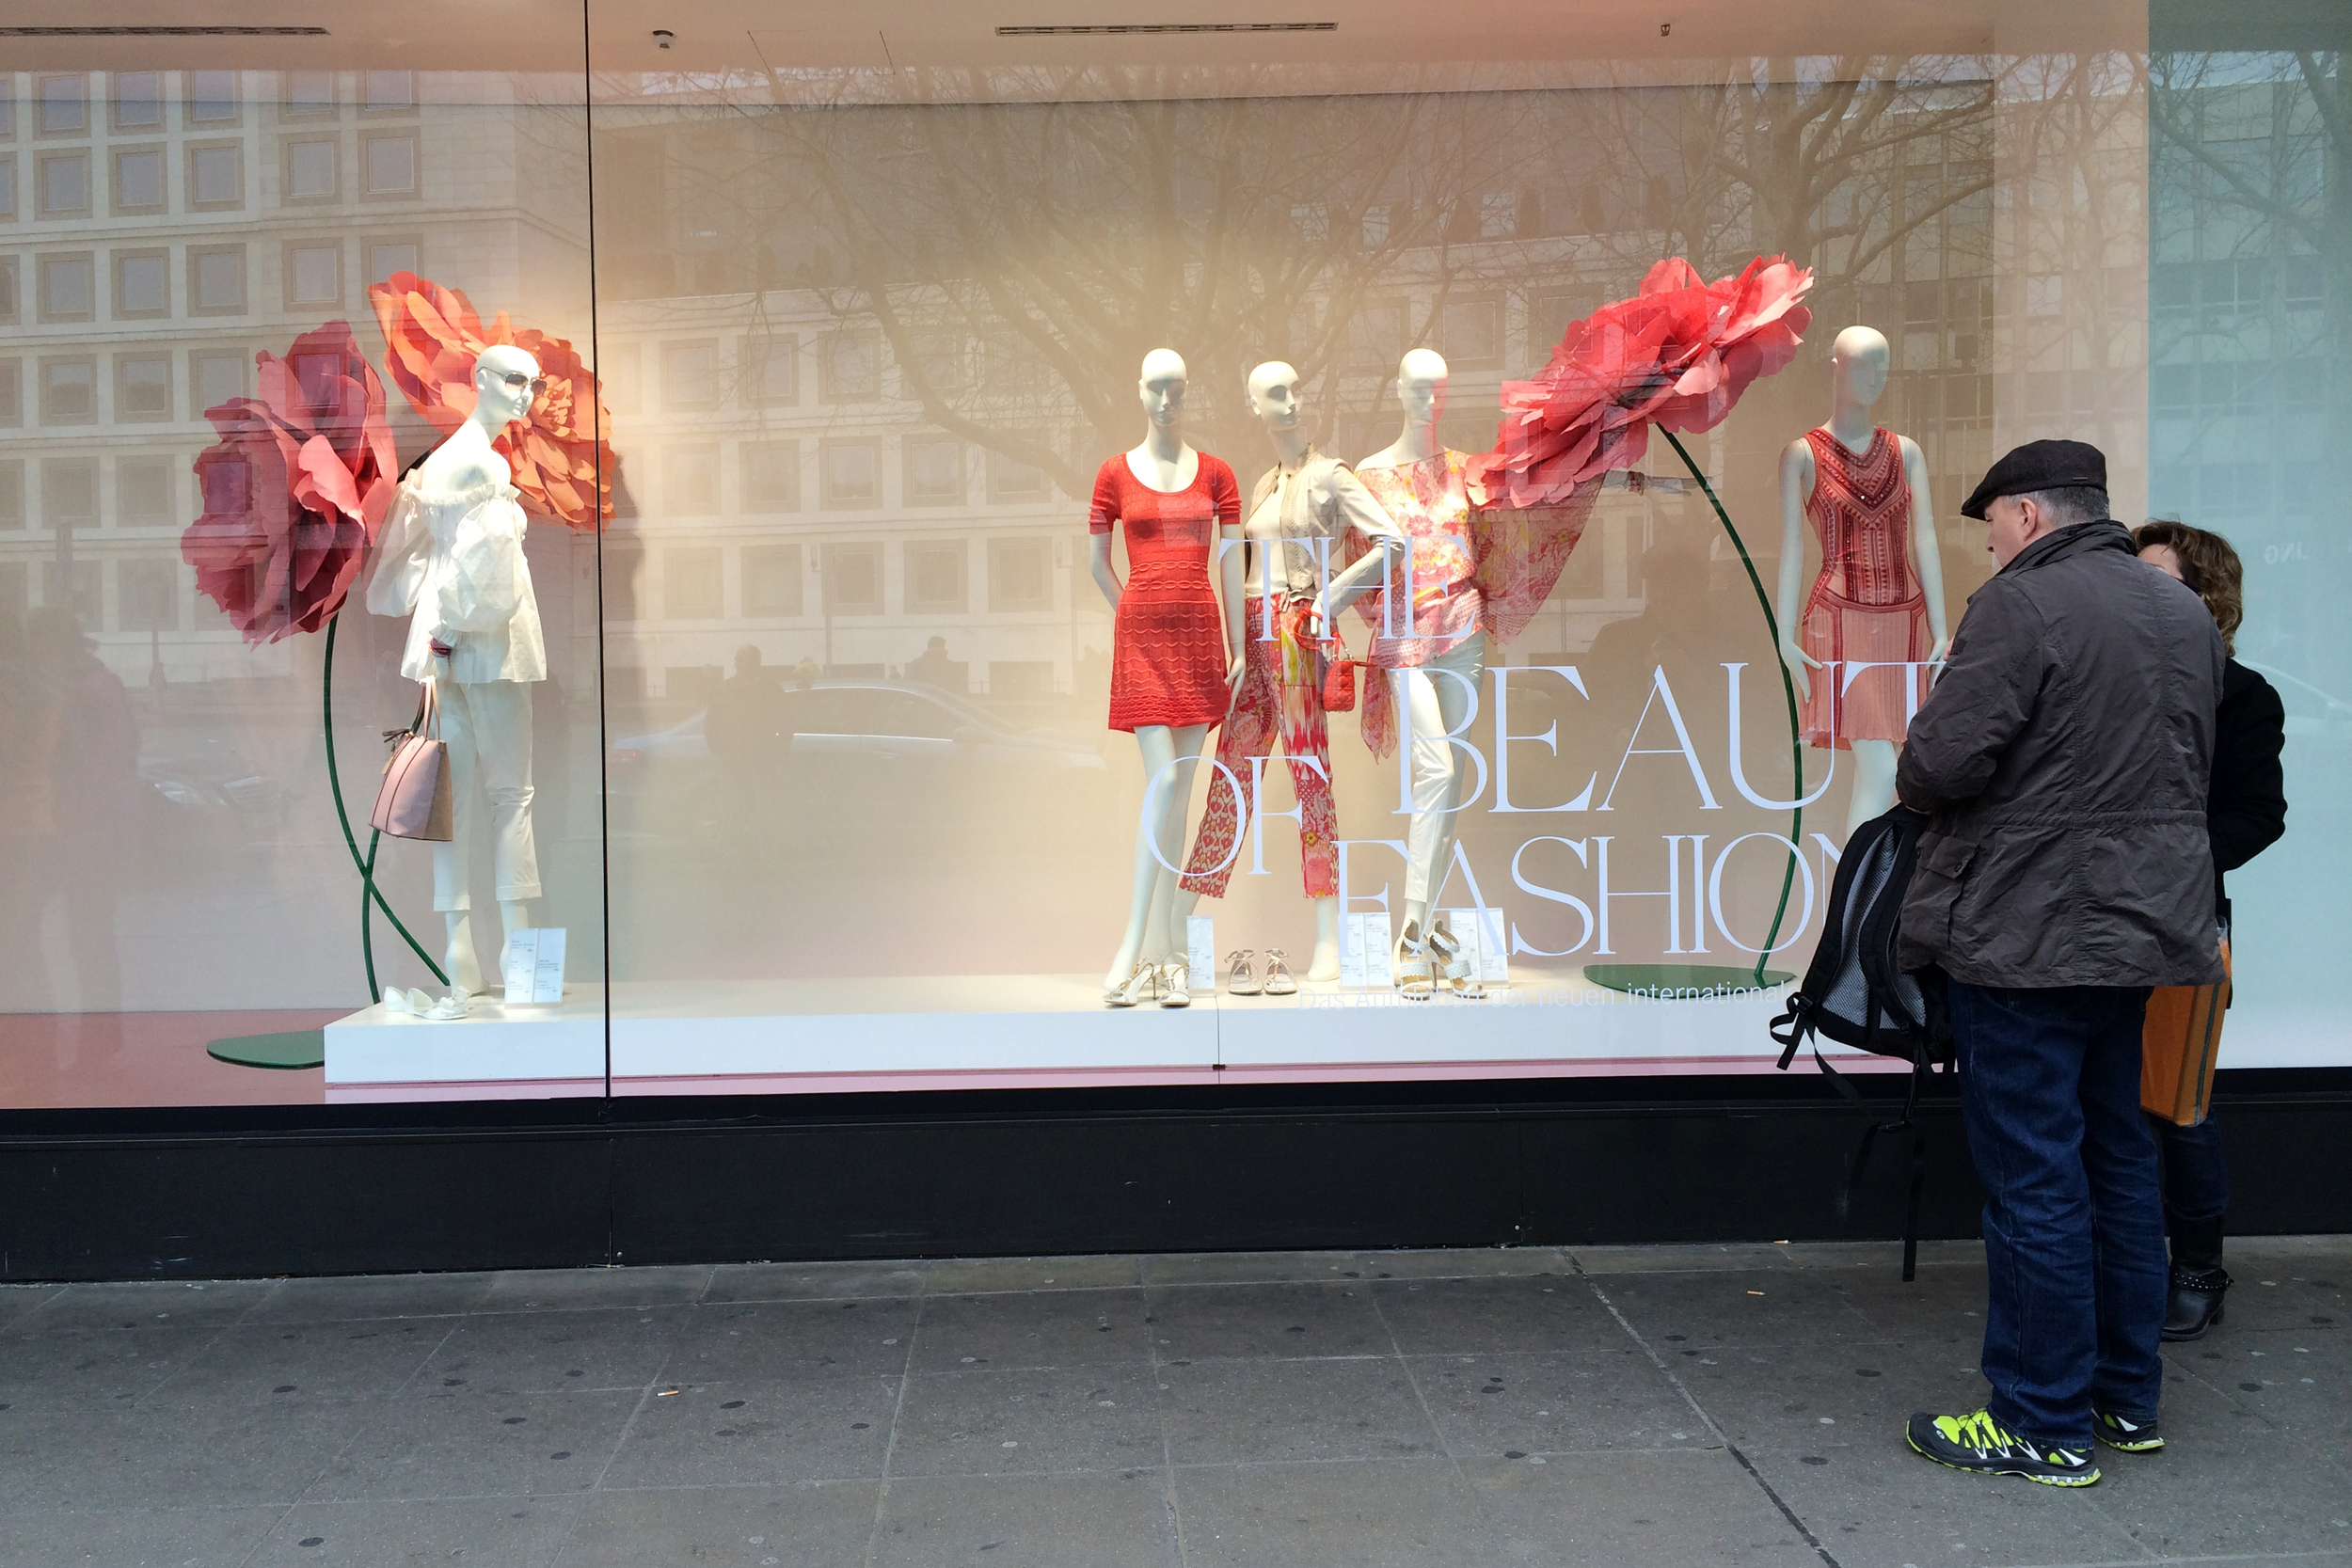 This window display and that man's shoes. Love it!